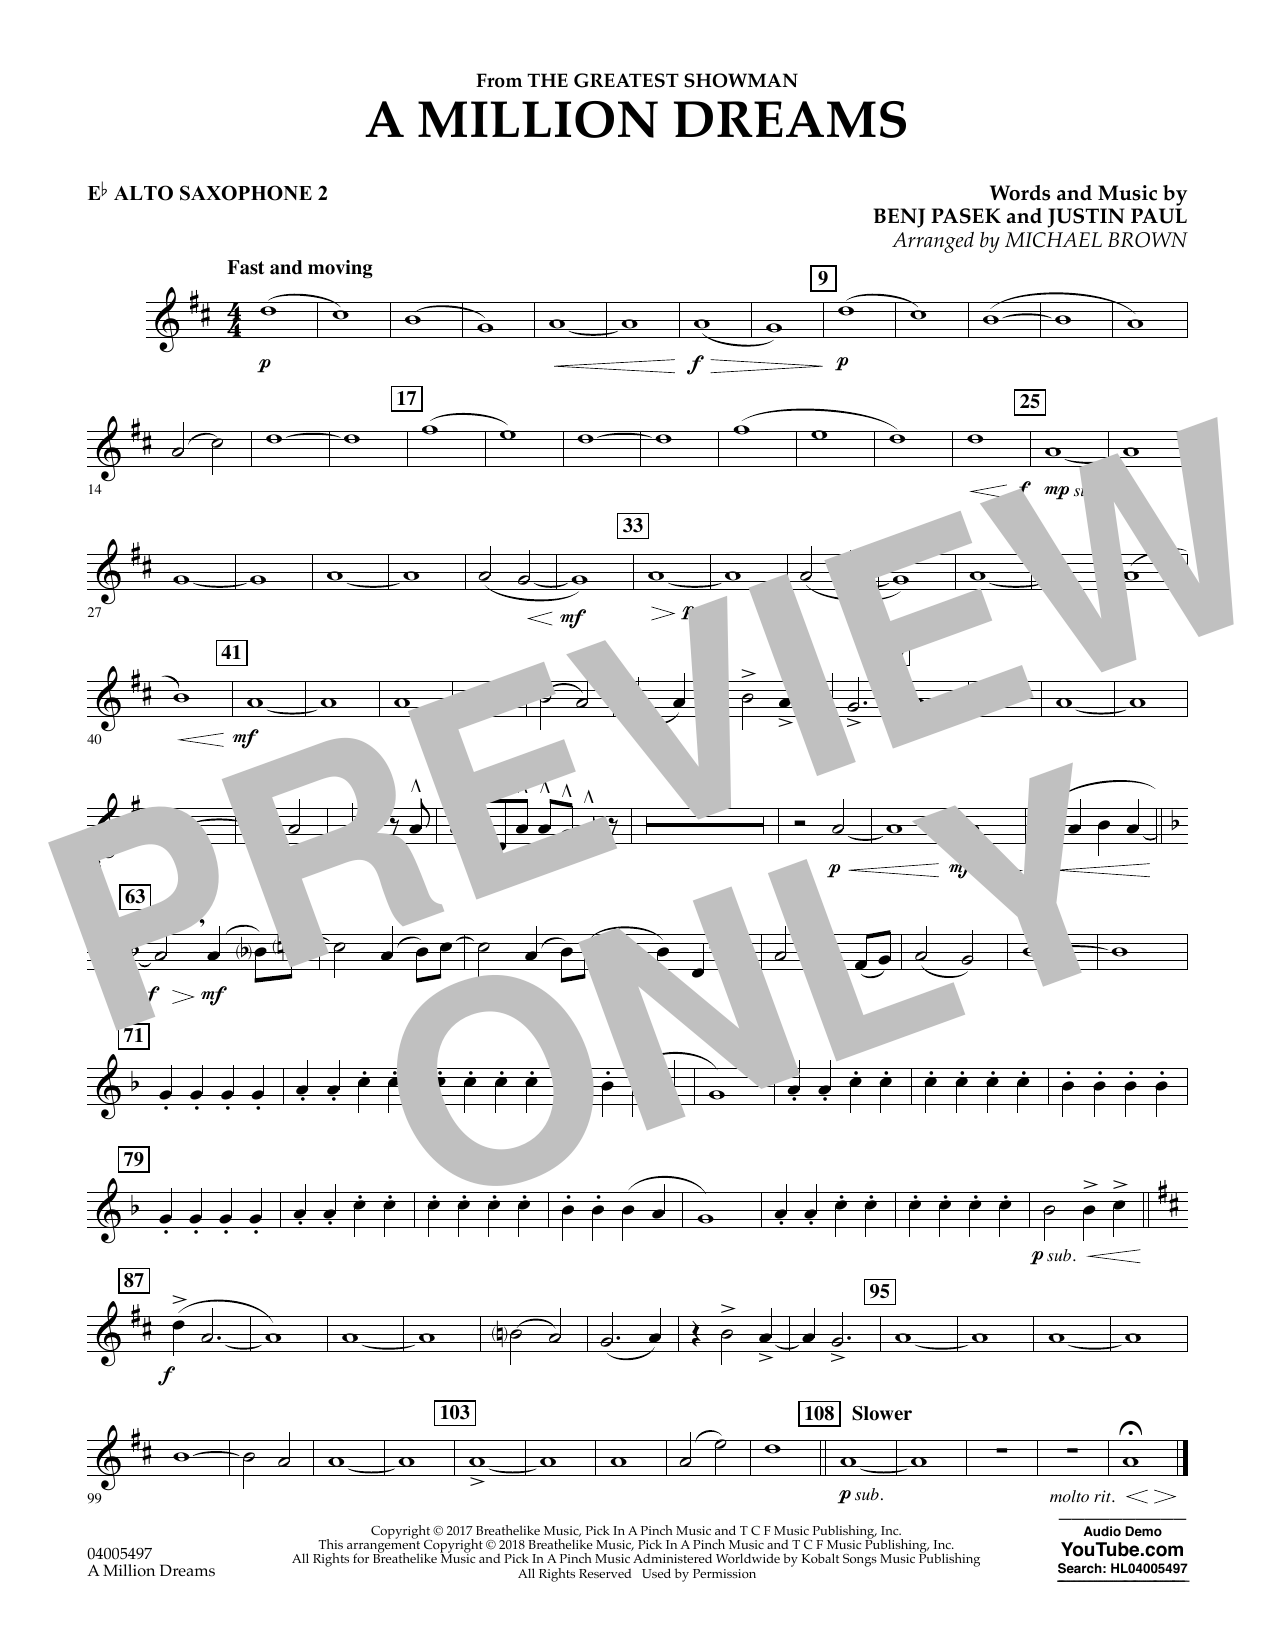 Pasek & Paul A Million Dreams (from The Greatest Showman) (arr. Michael Brown) - Eb Alto Saxophone 2 sheet music notes and chords. Download Printable PDF.